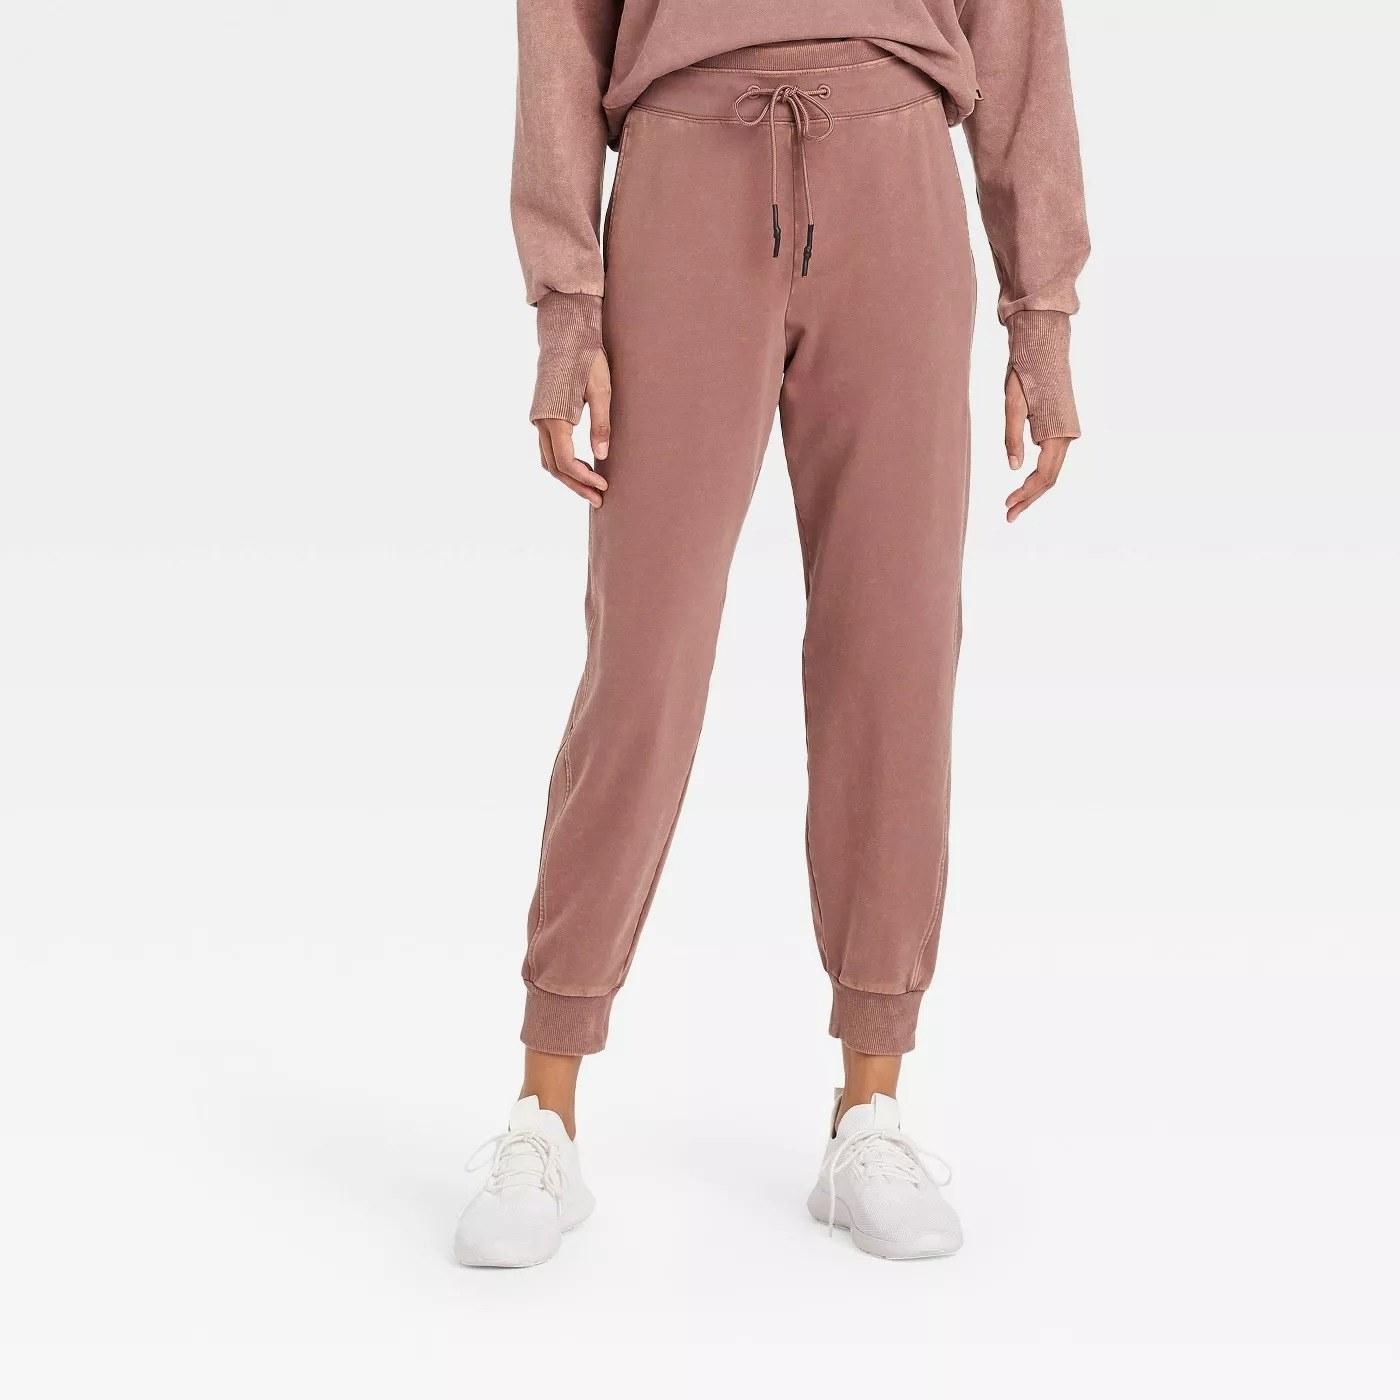 Model wearing light mocha sweats cuffed at the bottom of the pants, stops at the ankle